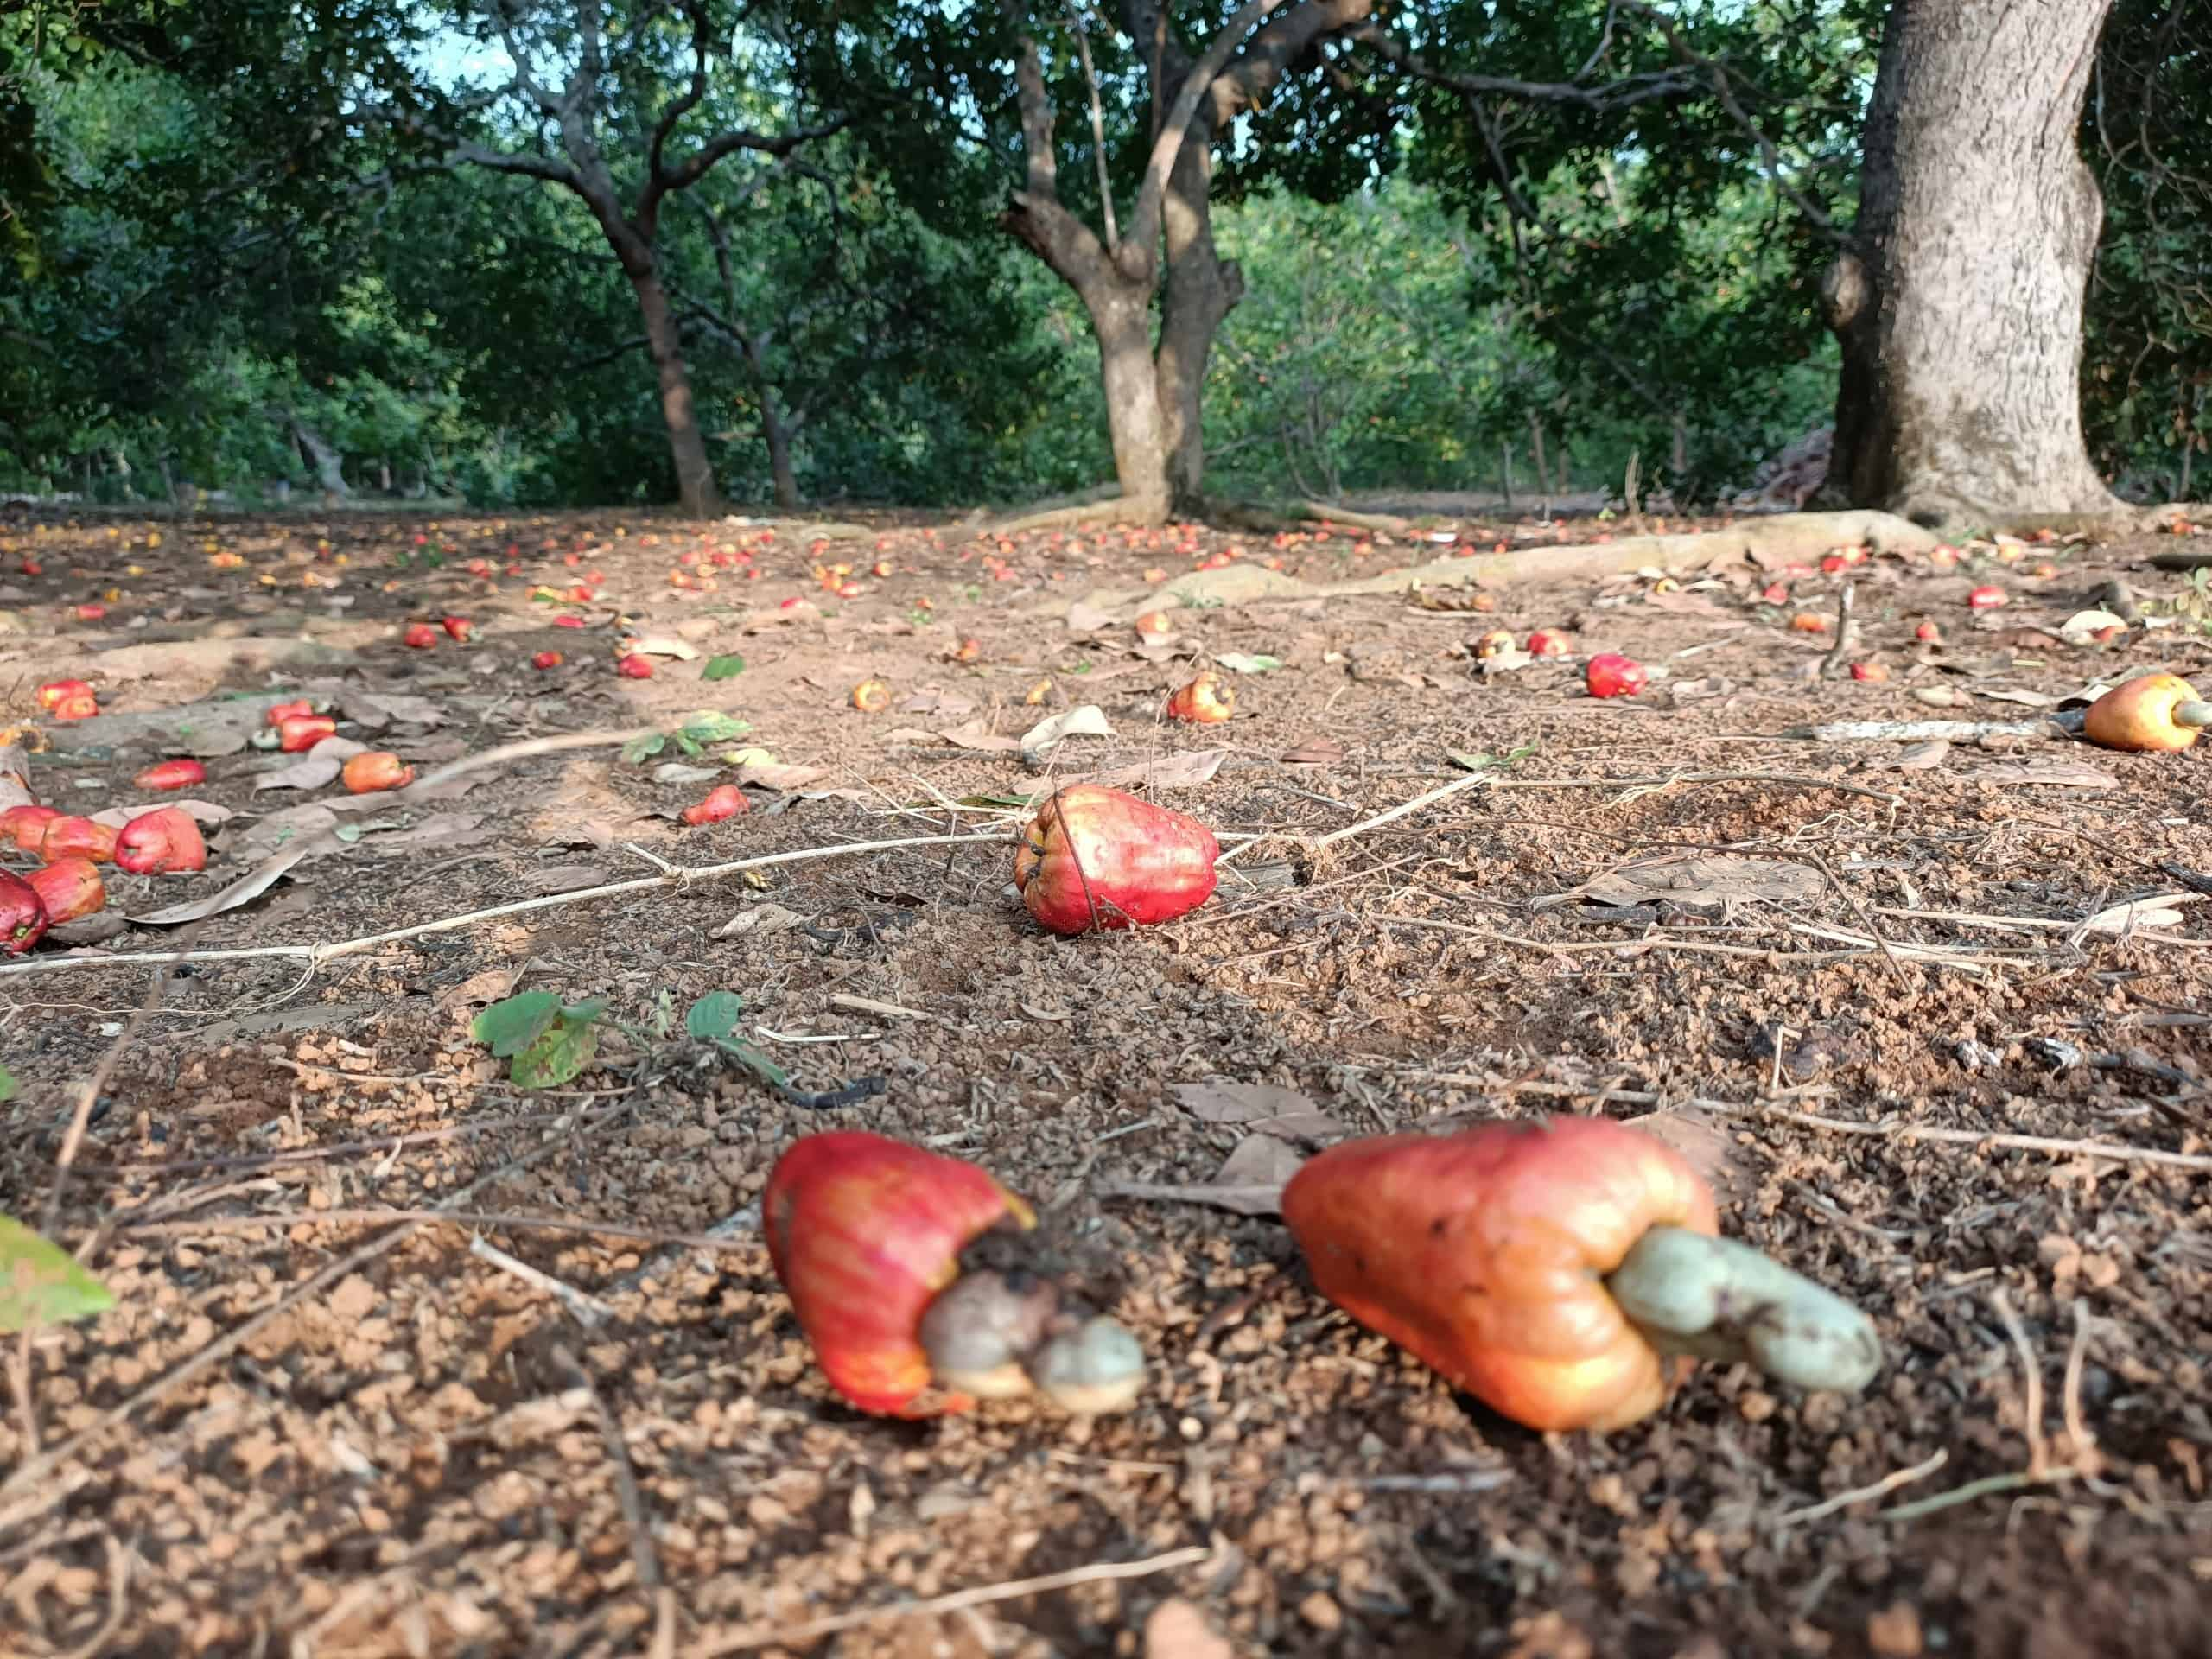 Cashews ready to be picked up